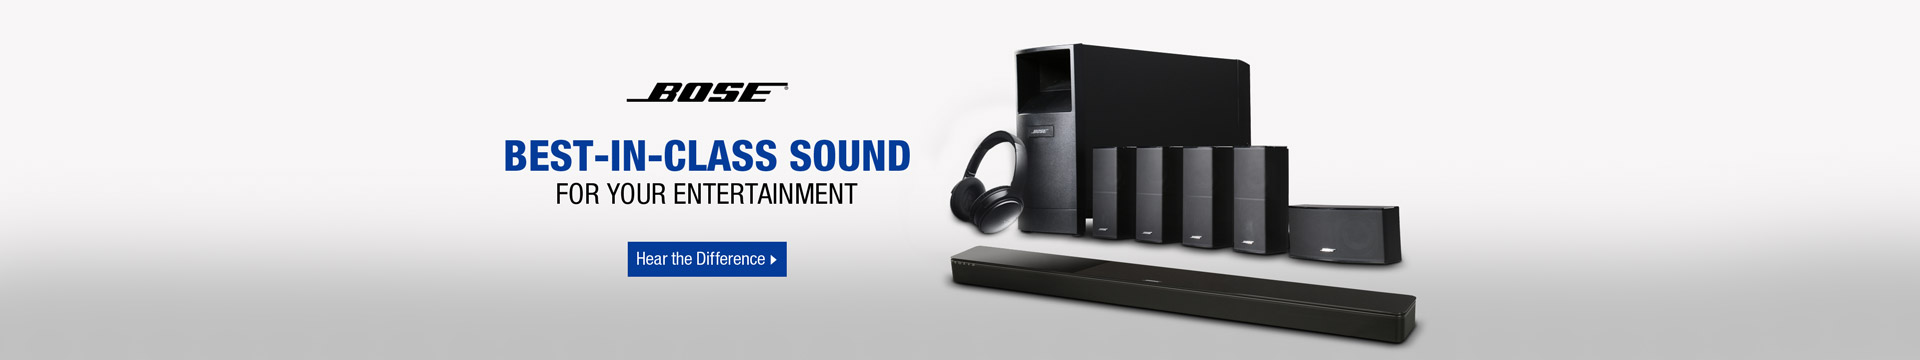 Best-in-class sound